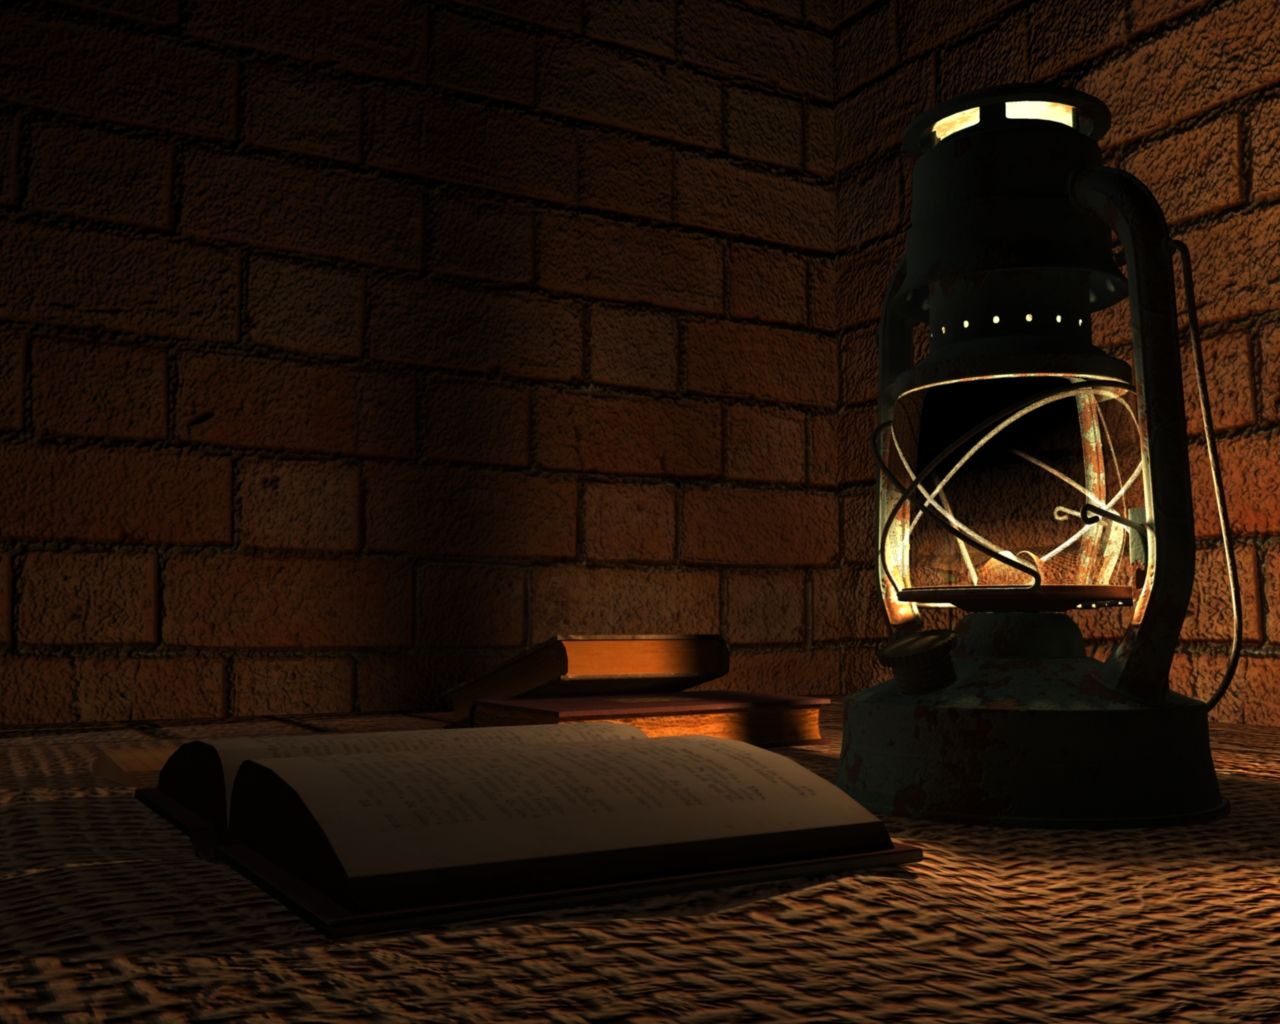 Lantern study  Modelling Texturing Lighting Rendering u0026 Compositing using Autodesk Maya : maya lighting - www.canuckmediamonitor.org